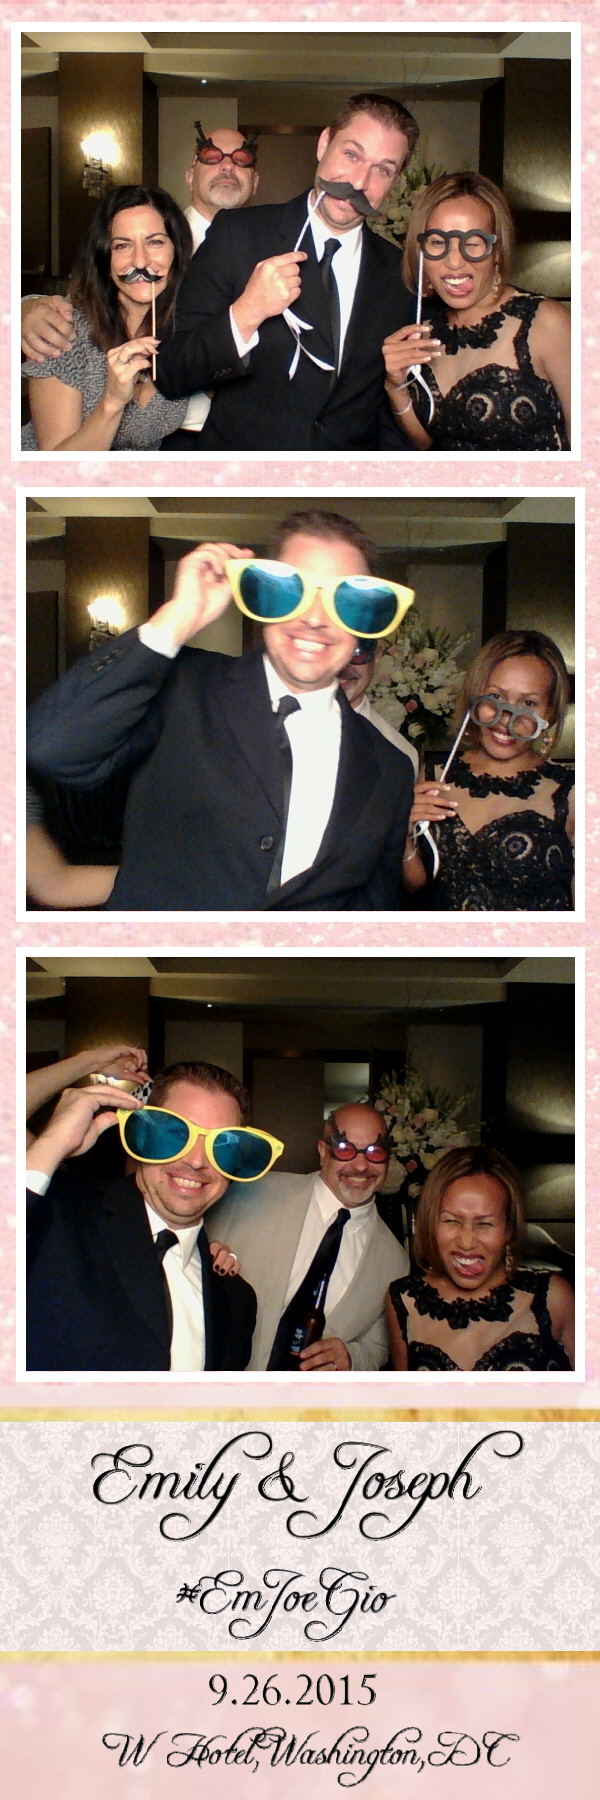 Guest House Events Photo Booth E&J (22).jpg